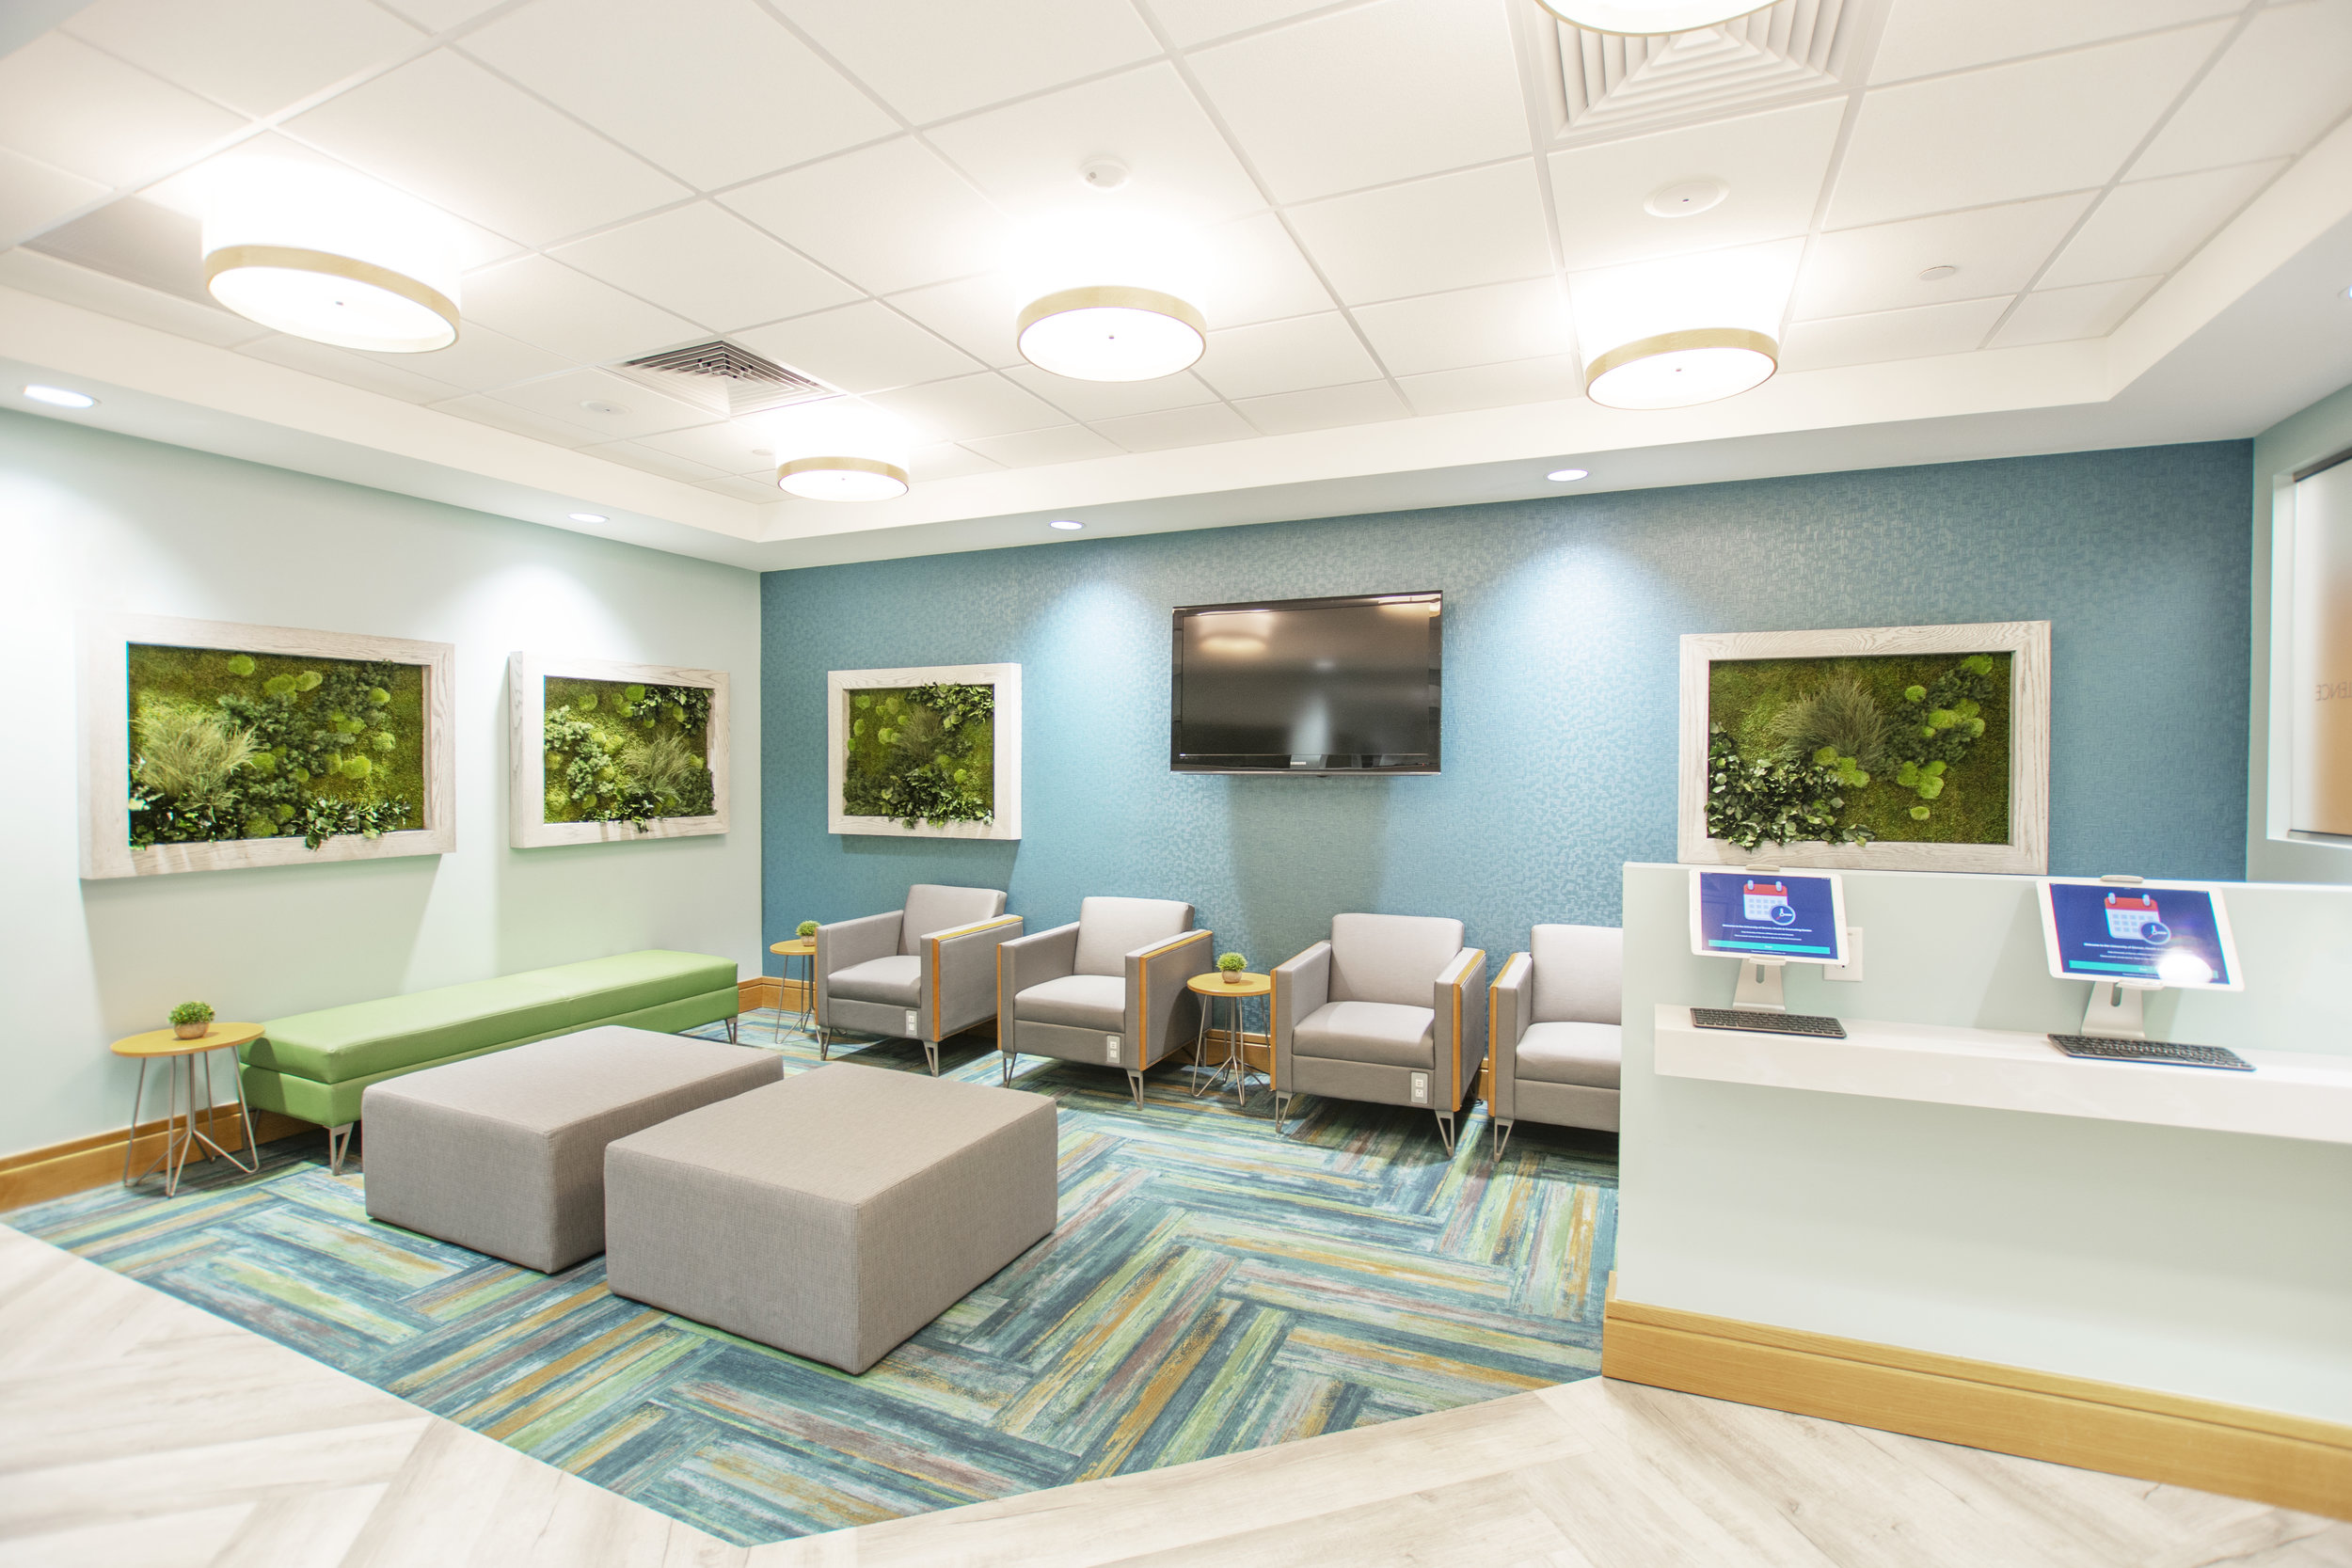 A Place for Serenity and Healing at DU Health & Counseling Center -